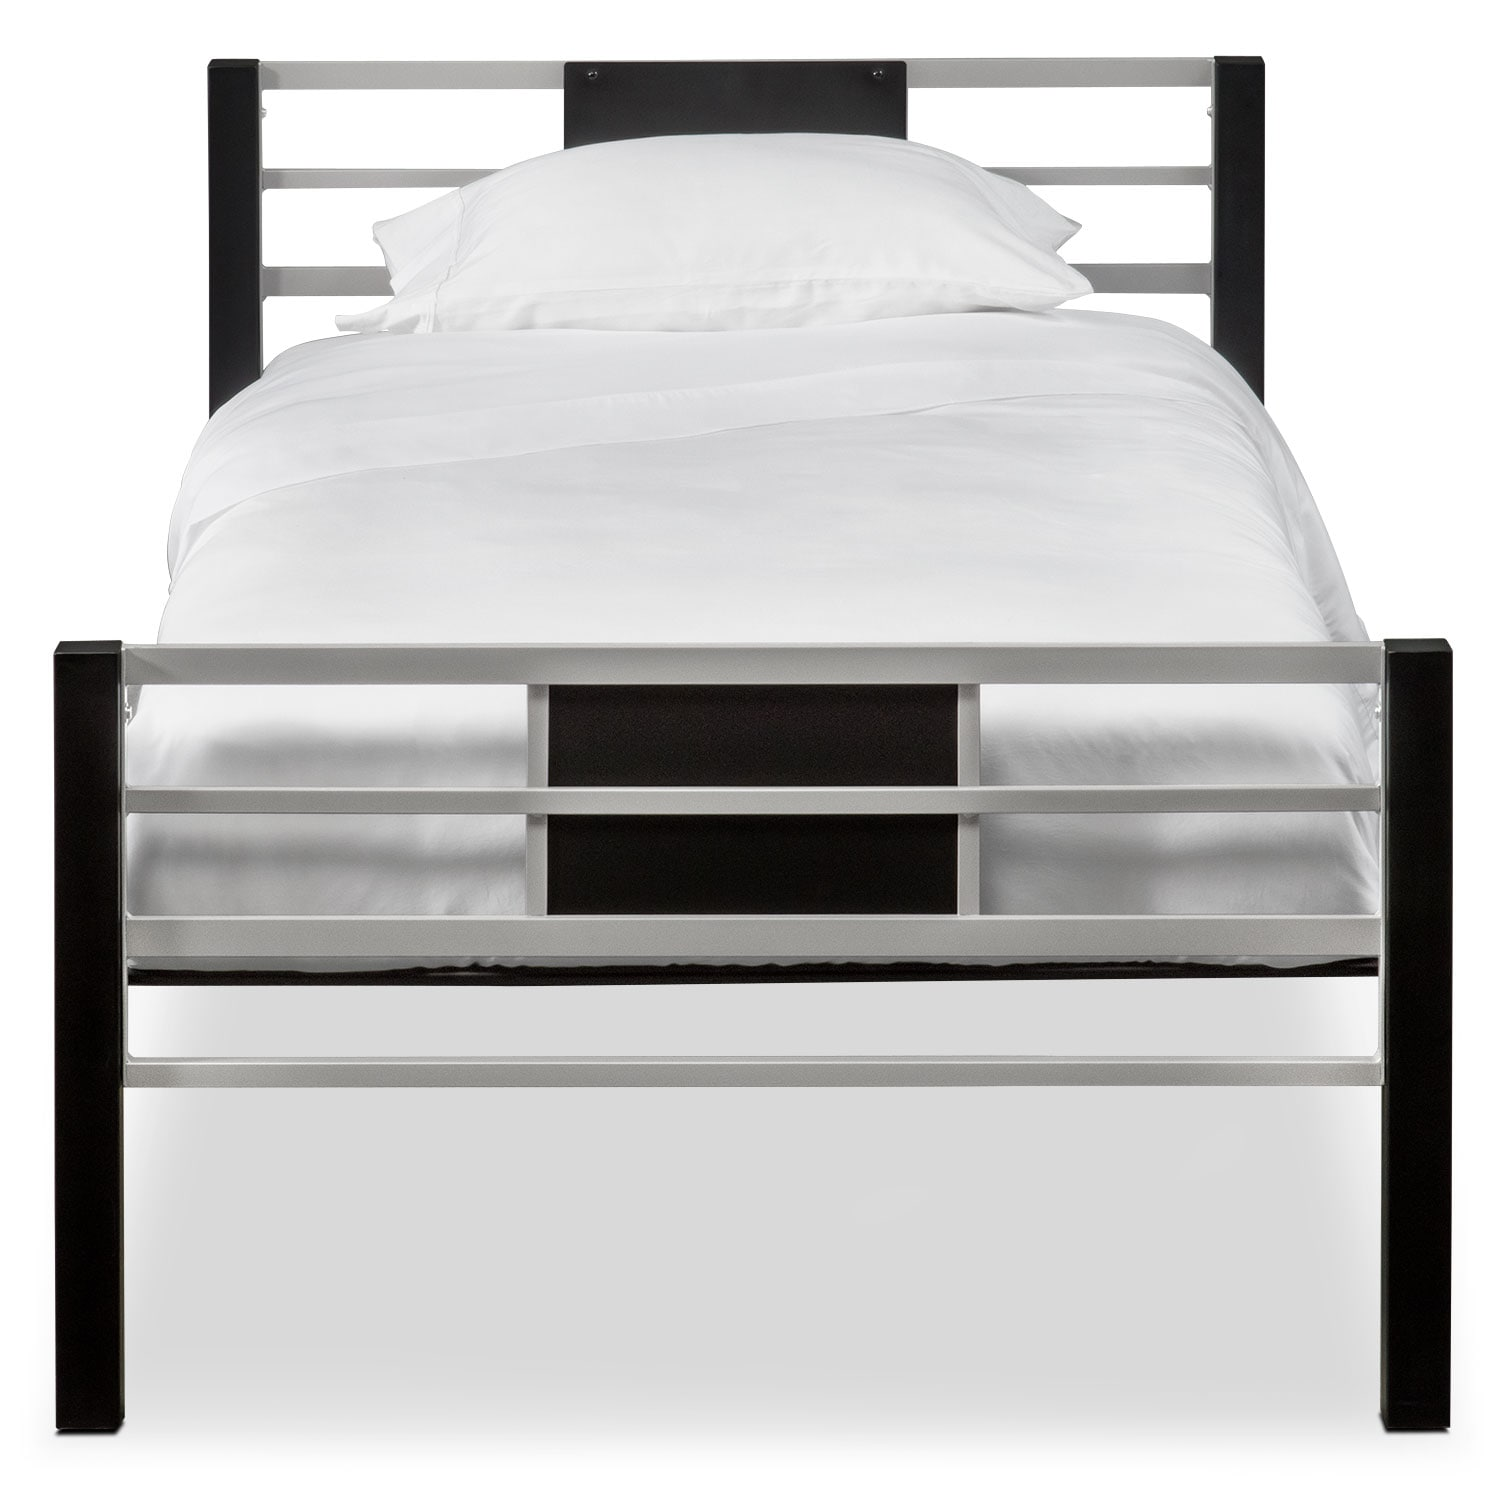 click to change image - Twin Iron Bed Frame